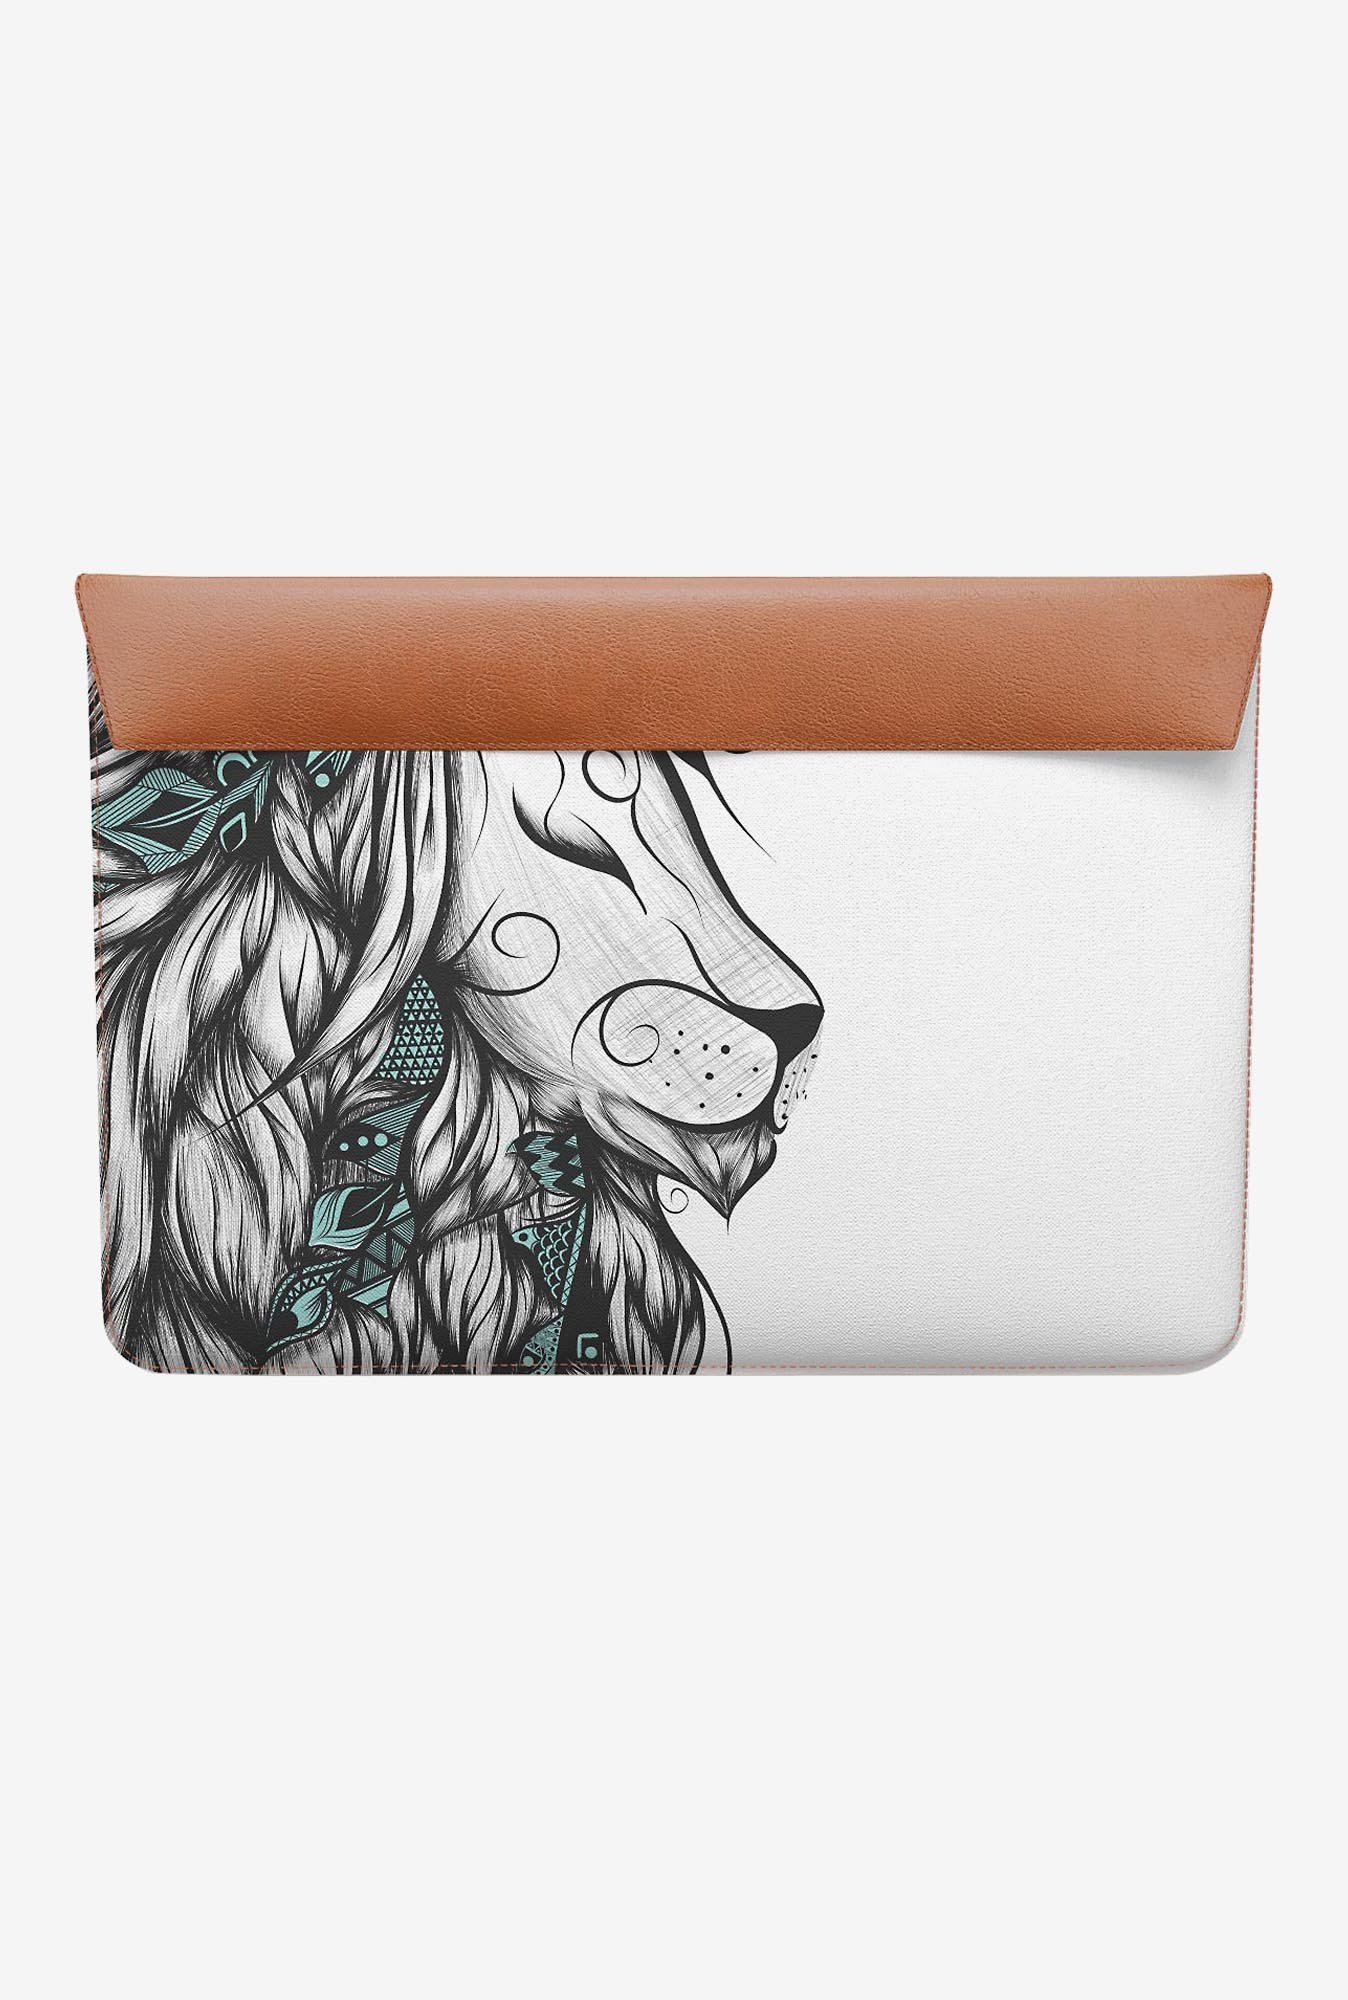 DailyObjects Poetic Lion MacBook Air 11 Envelope Sleeve